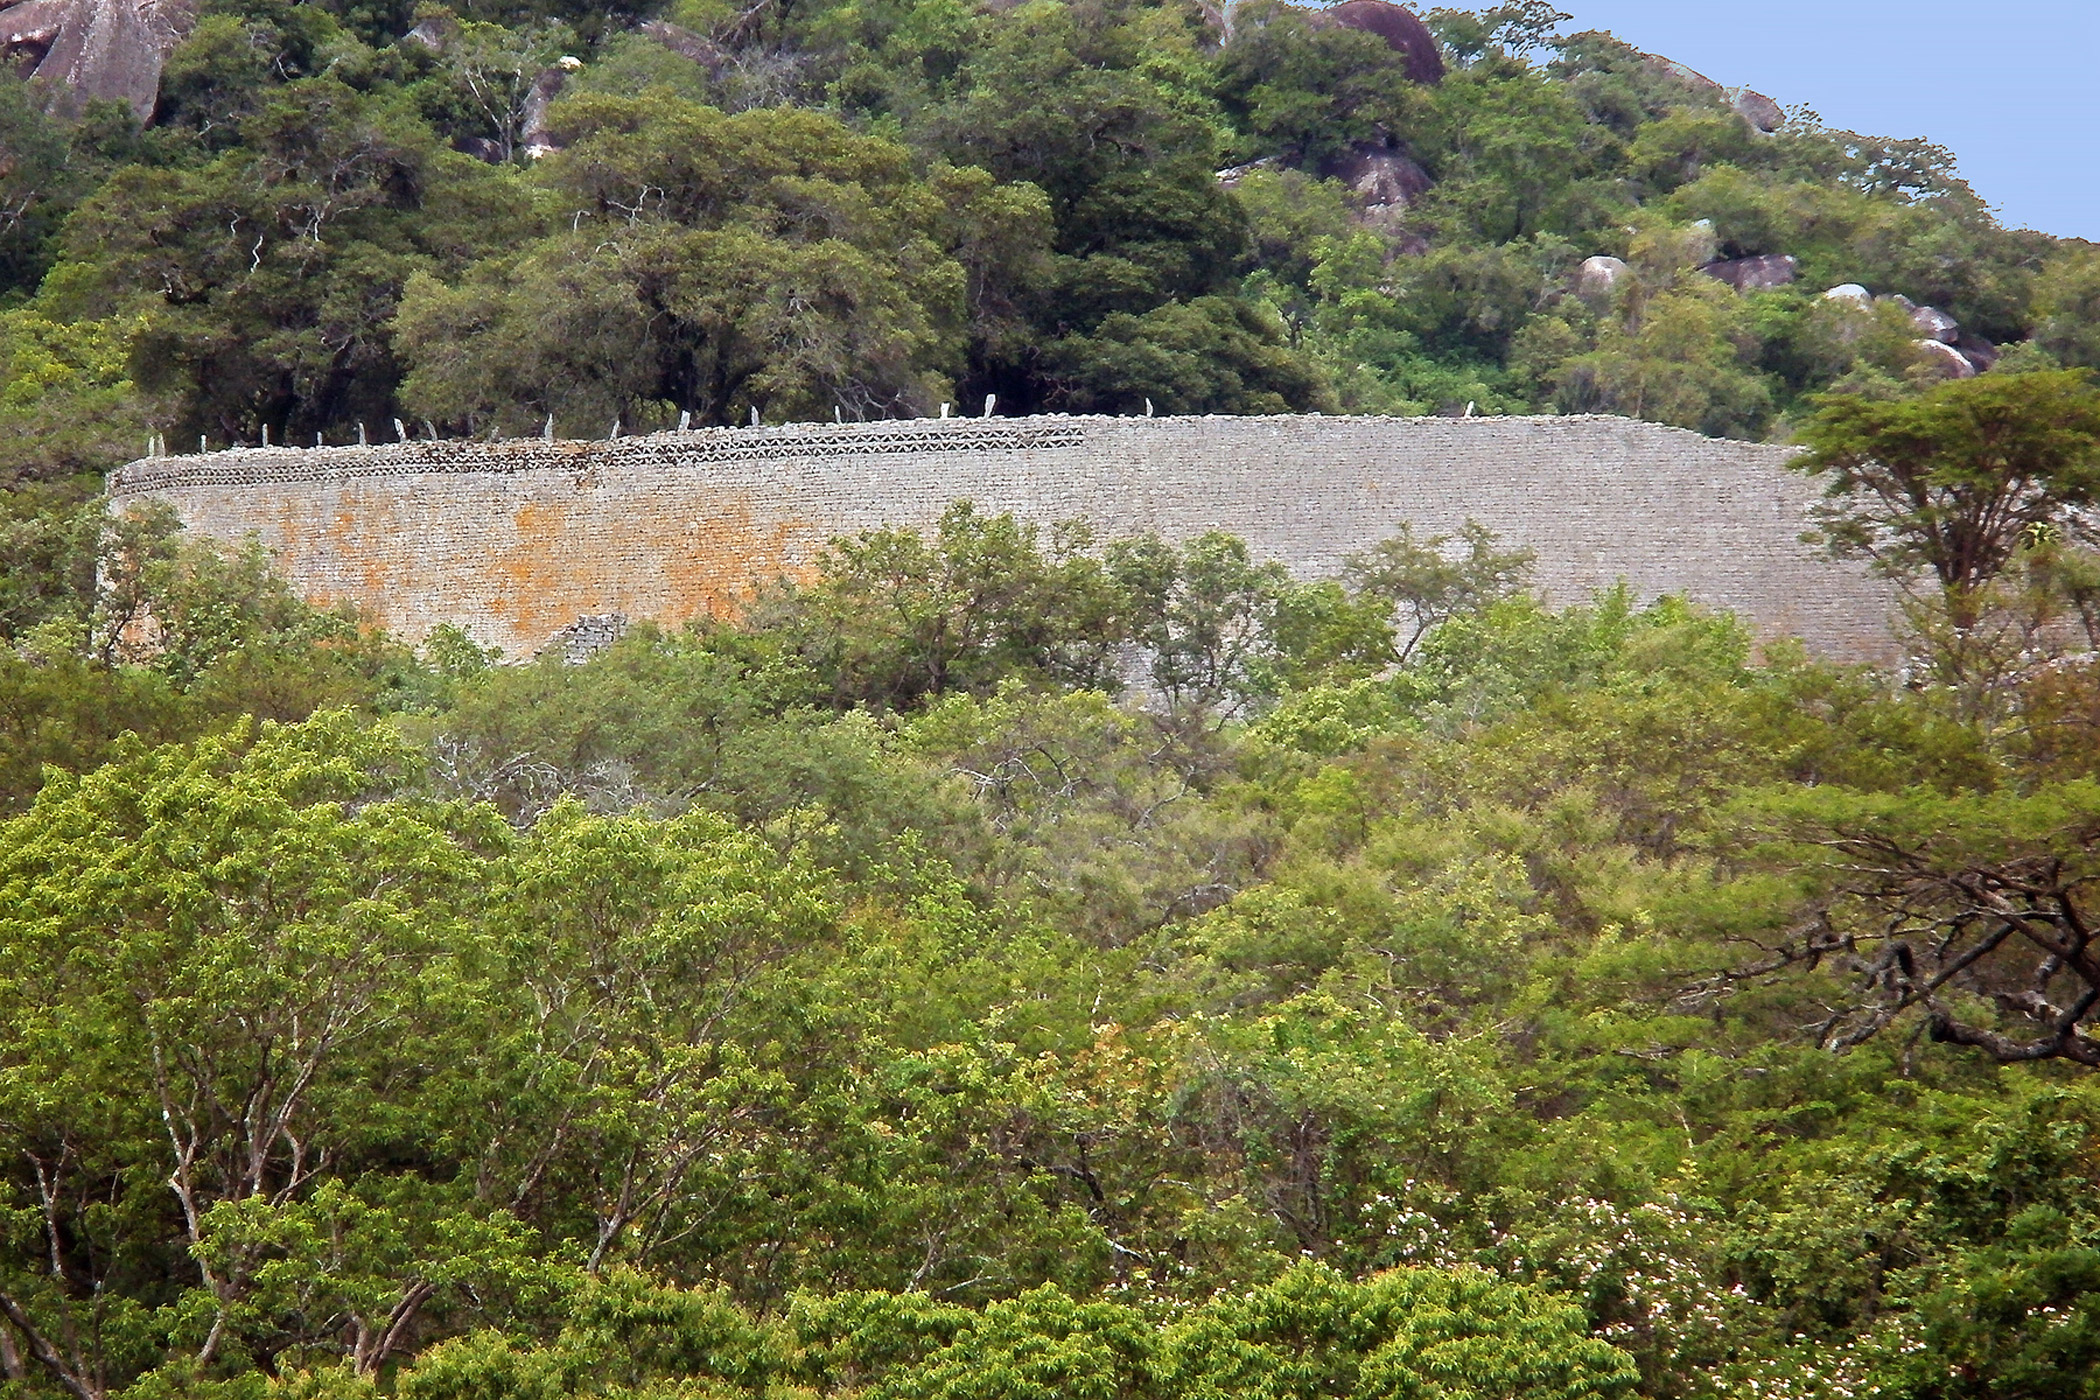 Zimbabwe, Great                               Zimbabwe: An architectural masterpiece and one of Africa's most iconic sites, Great Zimbabwe is at risk from the uncontrolled growth of vegetation and other management challenges that threaten its preservation.